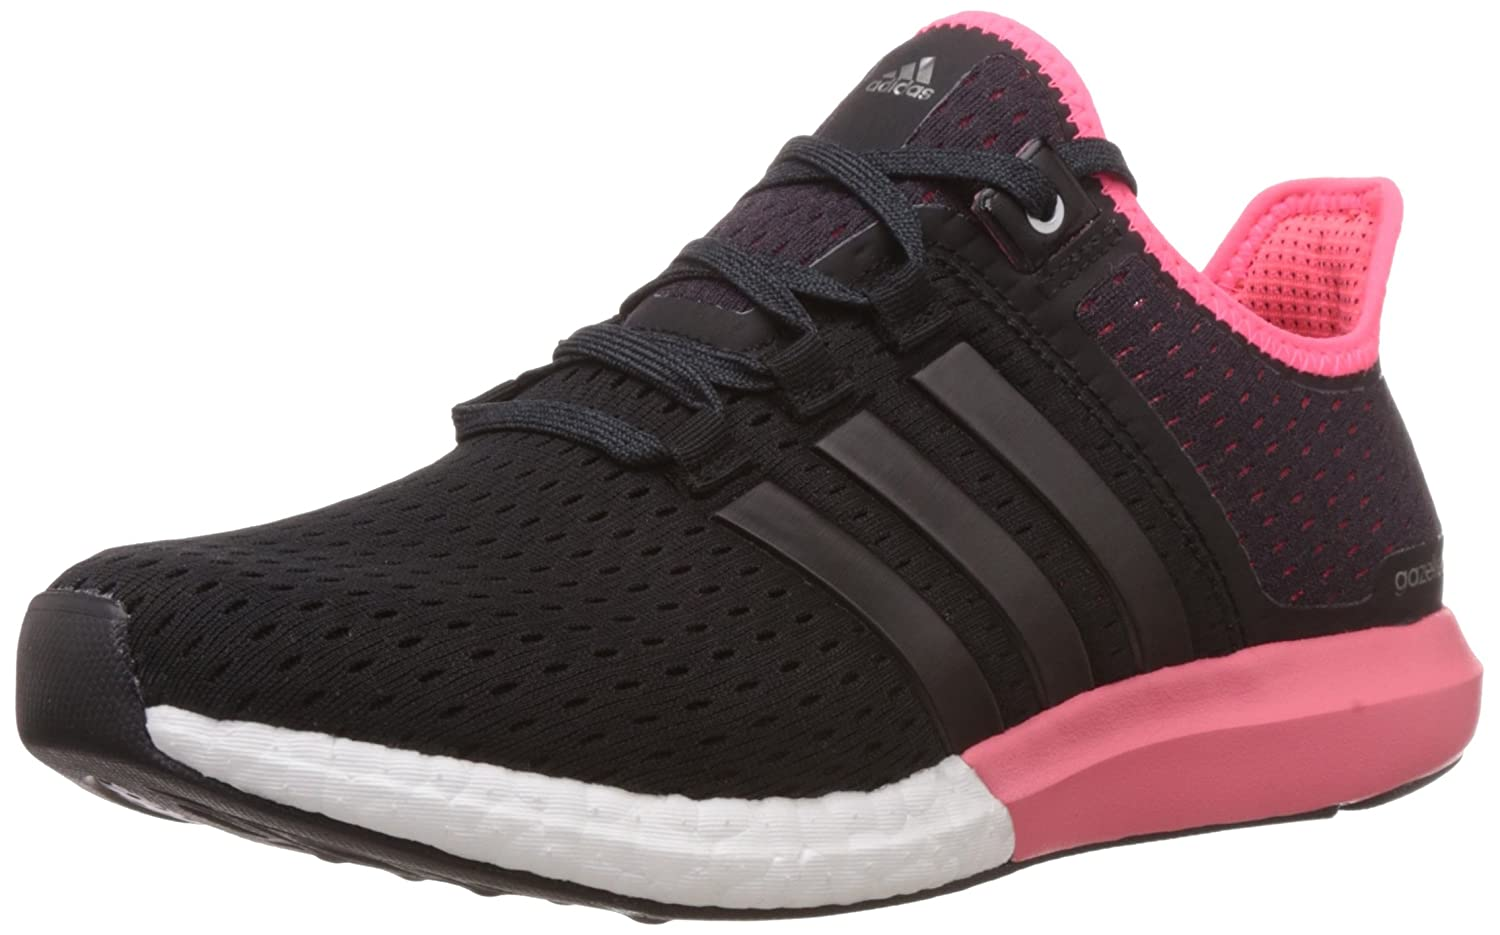 Fantástico asiático residuo  Buy Adidas Women's Cc Gazelle Boost W Black and Red Mesh Running Shoes - 9  UK at Amazon.in